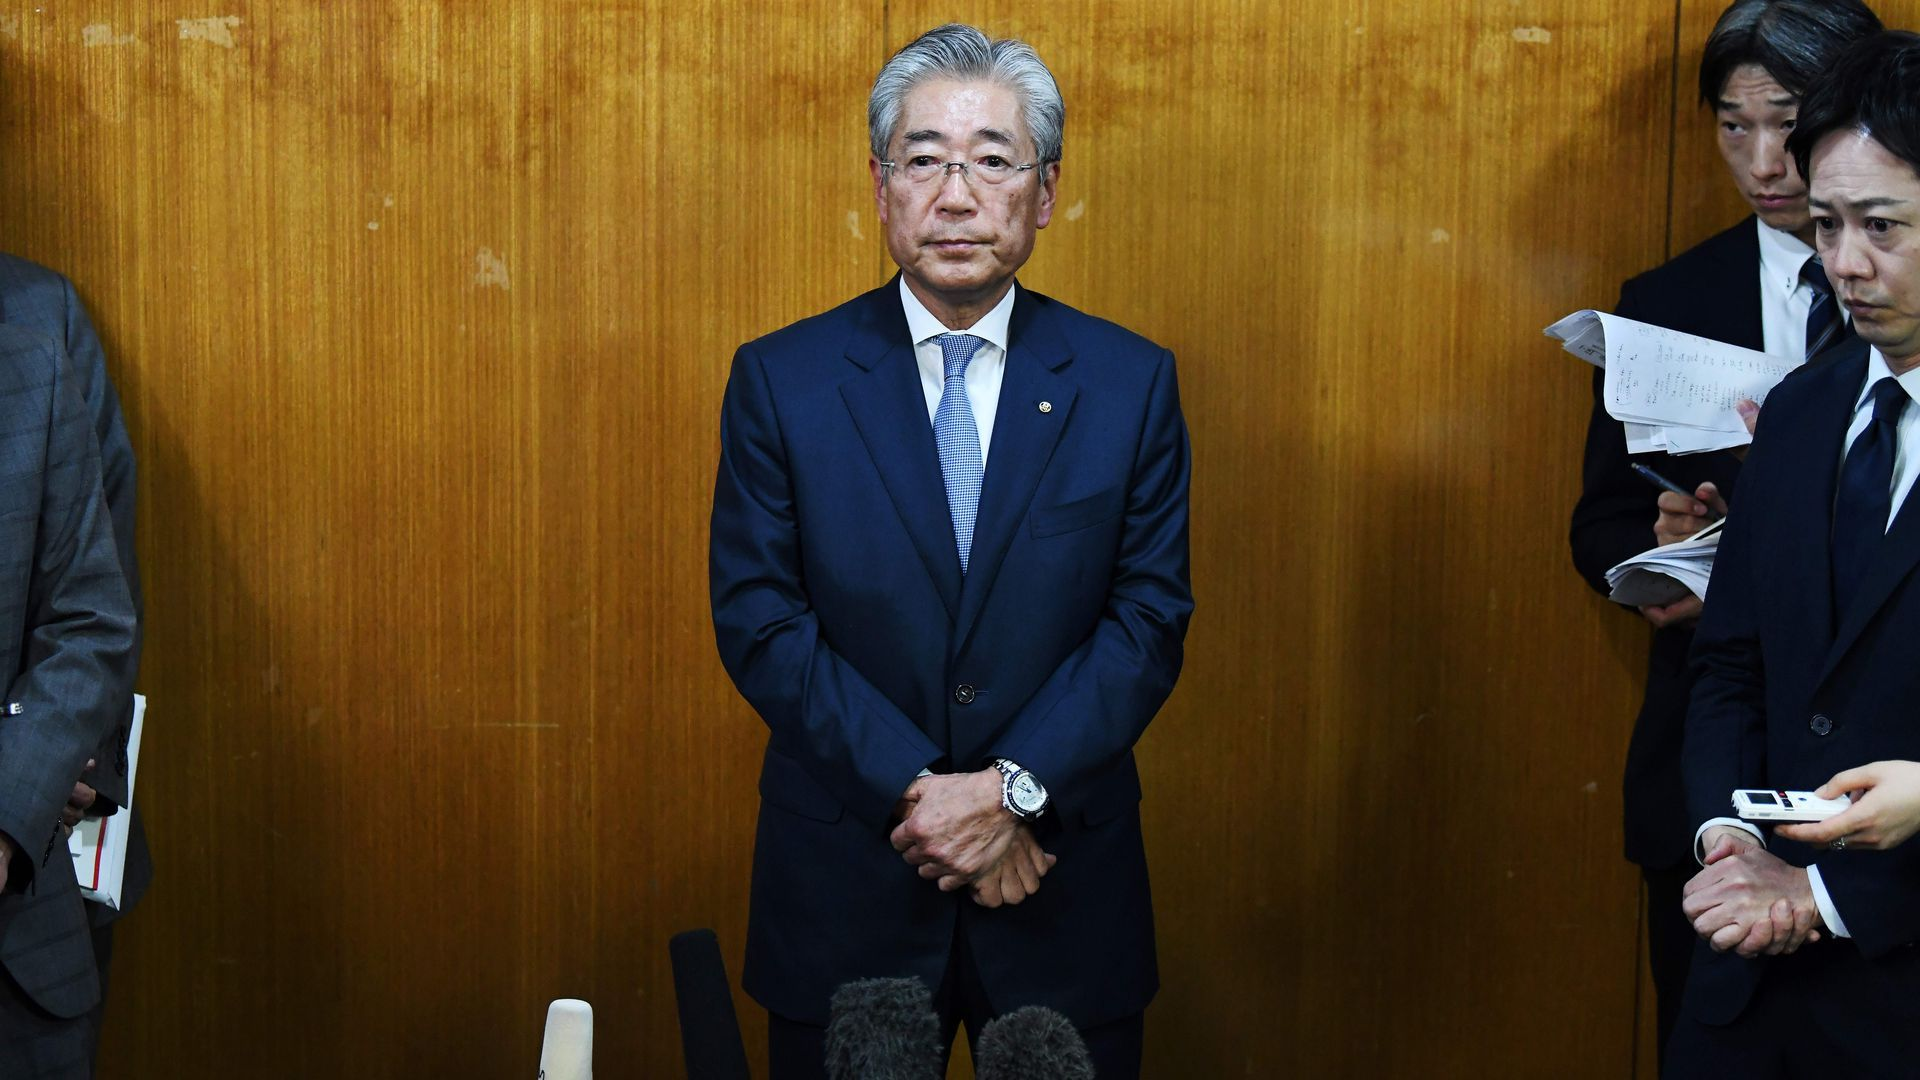 Tsunekazu Takeda stands in a blue suit with his arms folded and stands against a wooden wall.